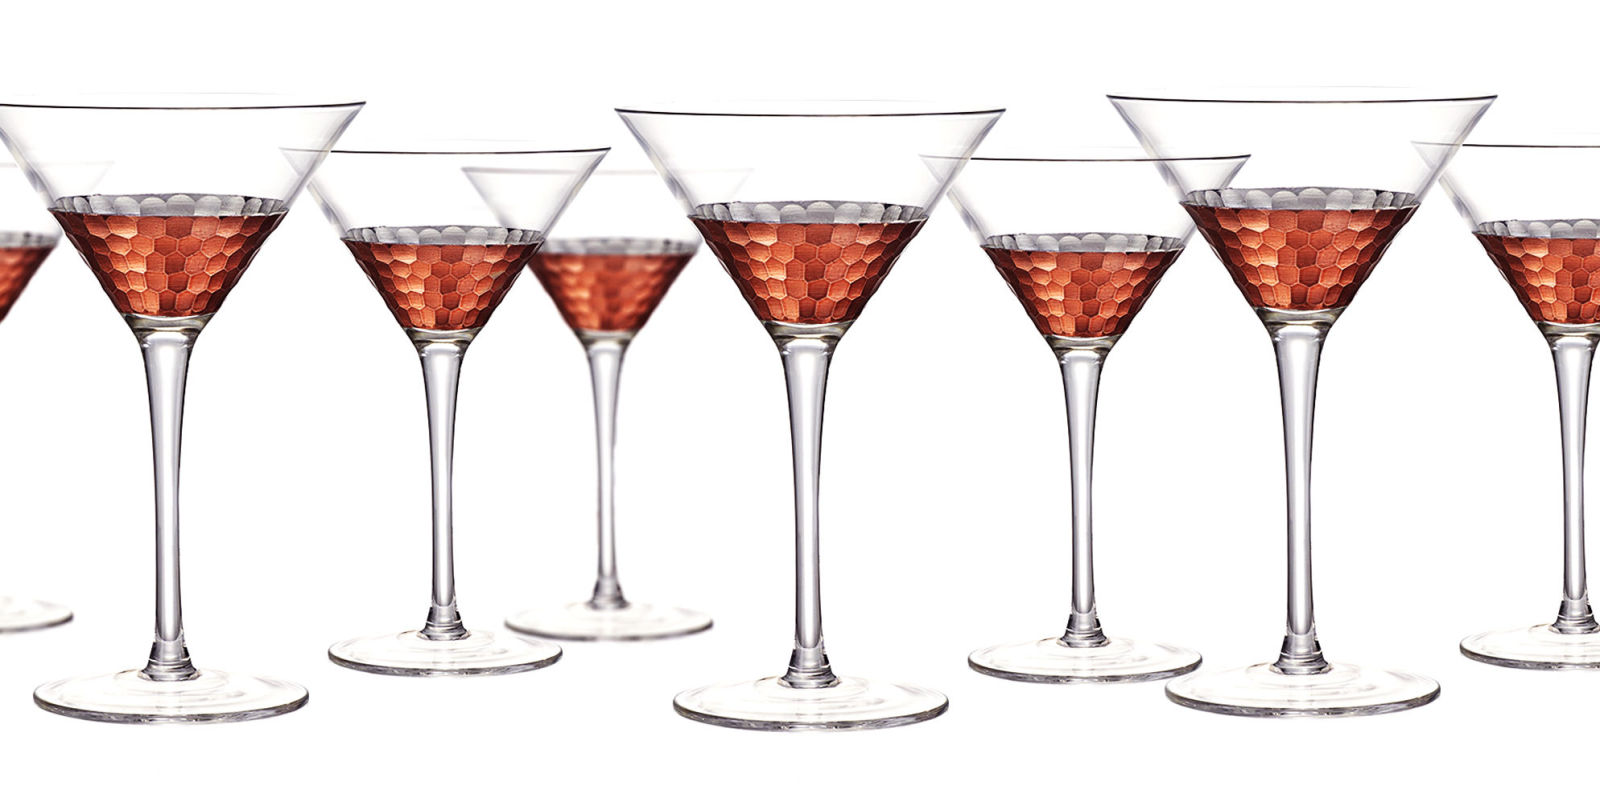 20 best martini glasses in 2018 unique martini glasses. Black Bedroom Furniture Sets. Home Design Ideas